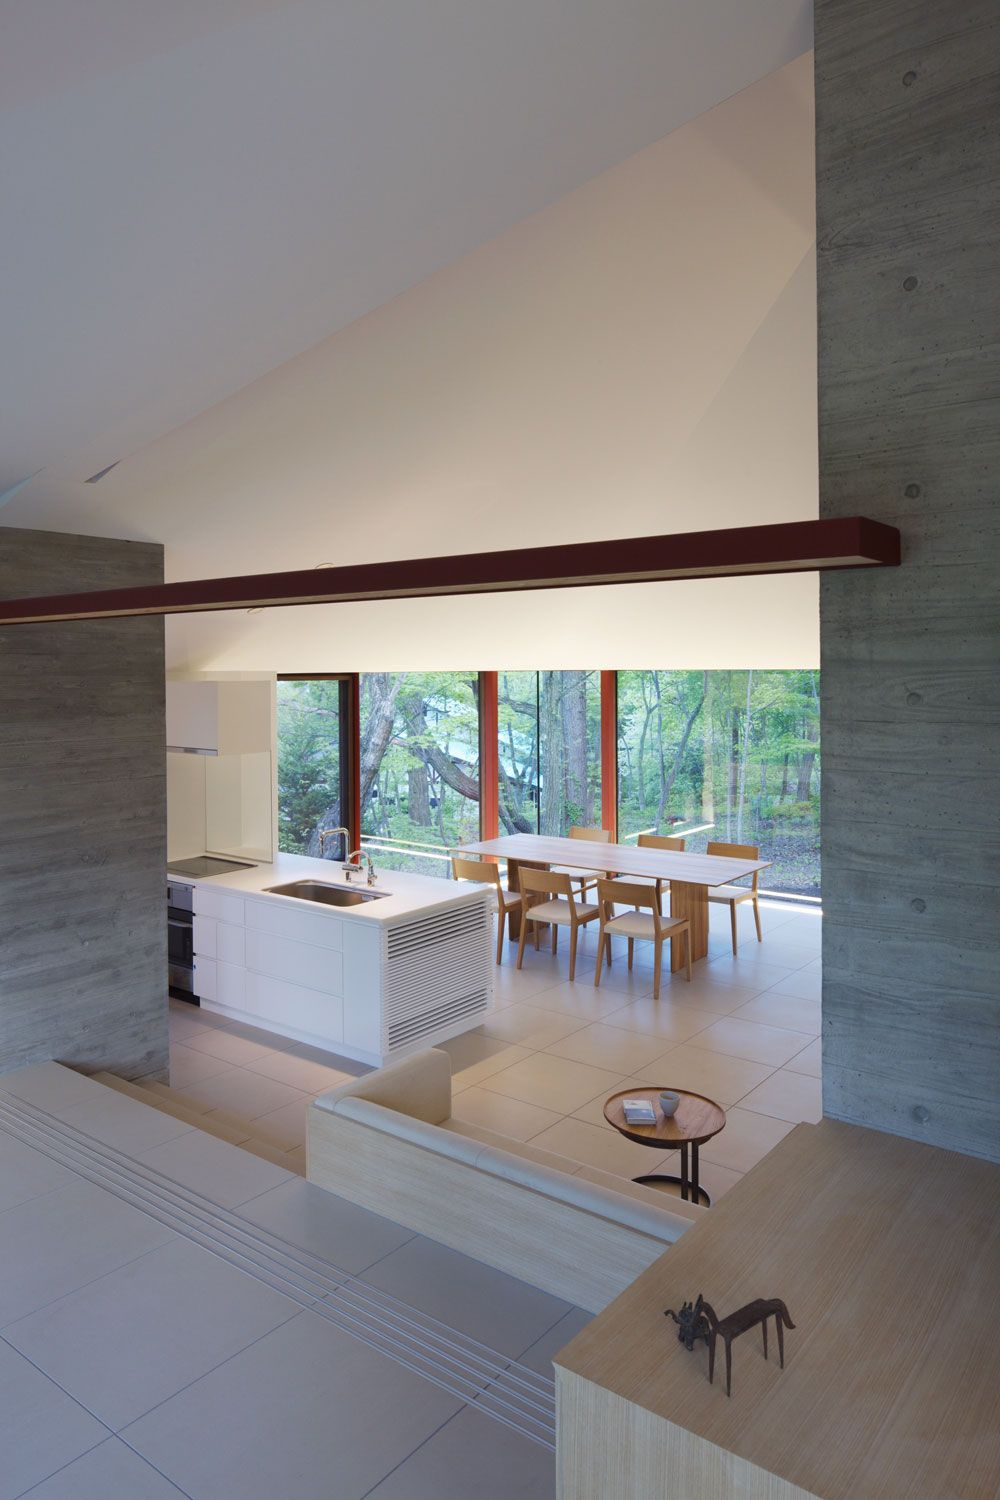 Dining, Kitchen, Open Plan, Hilltop Home in Karuizawa, Japan